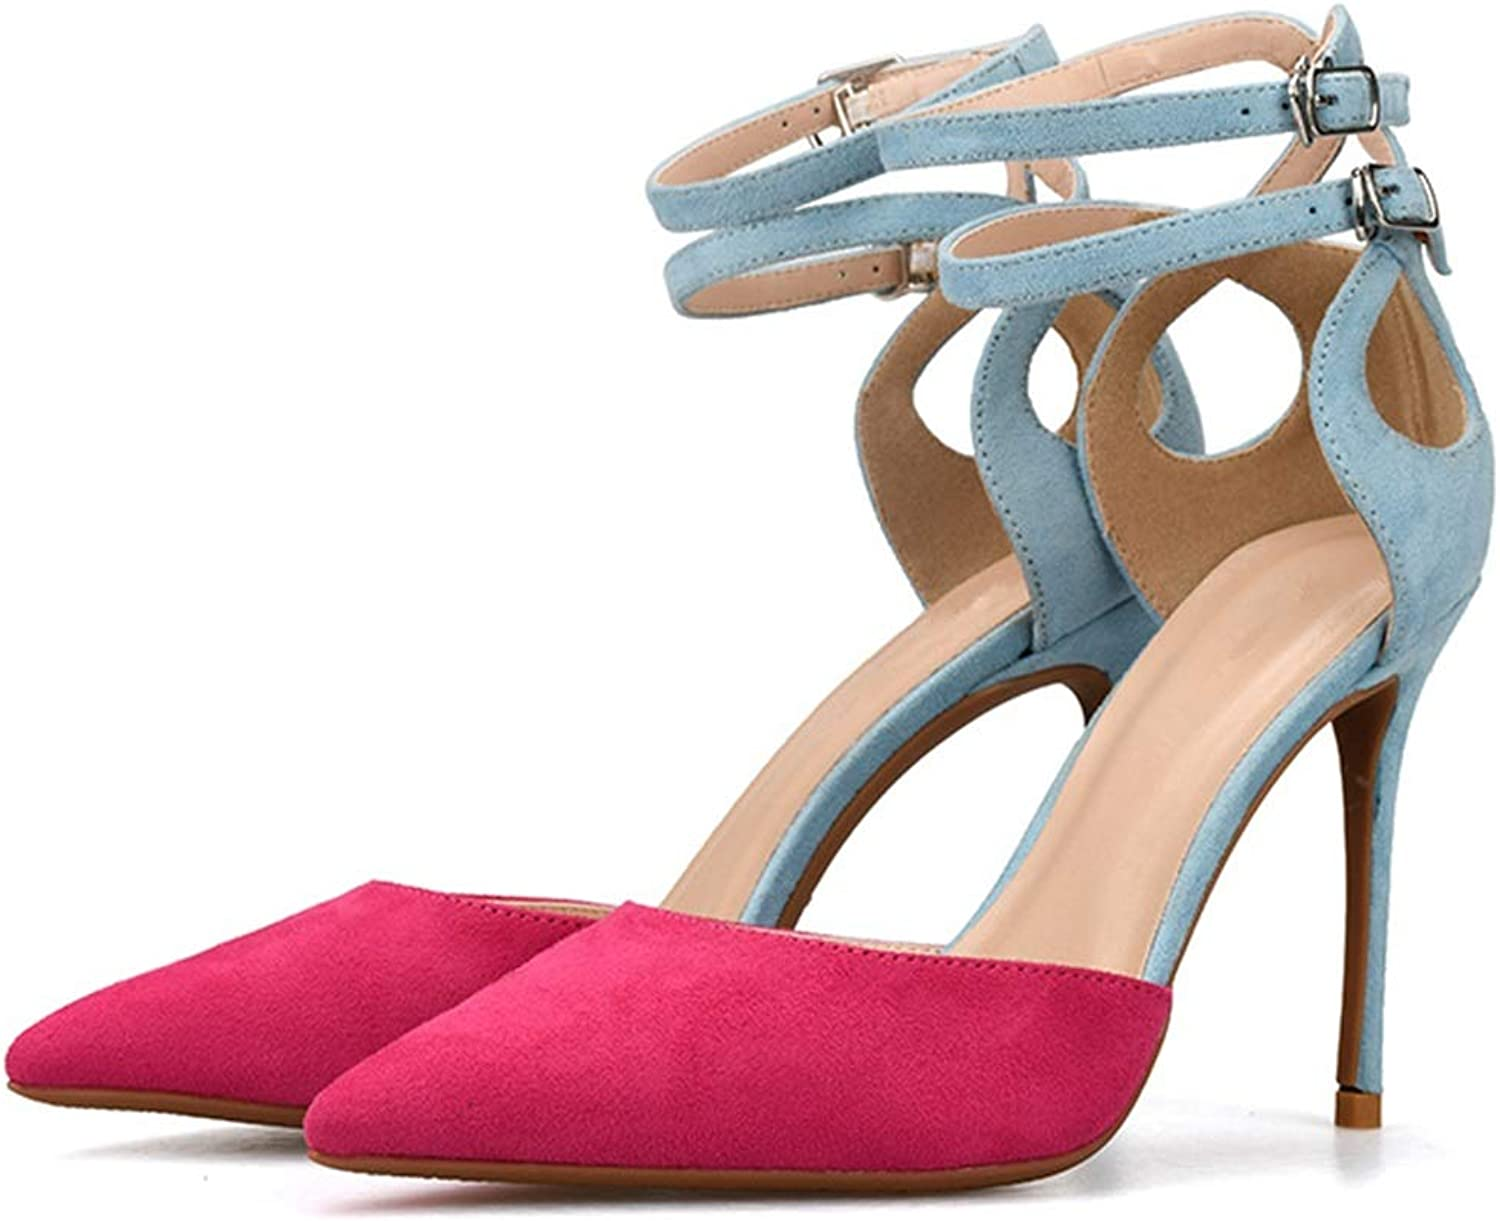 Lindarry Ankle Straps Sandals for Women Stiletto High Heeled Pumps Pointed Sides Cut Two Tones Style Fashion (color   pink, Size   5.5 M US)